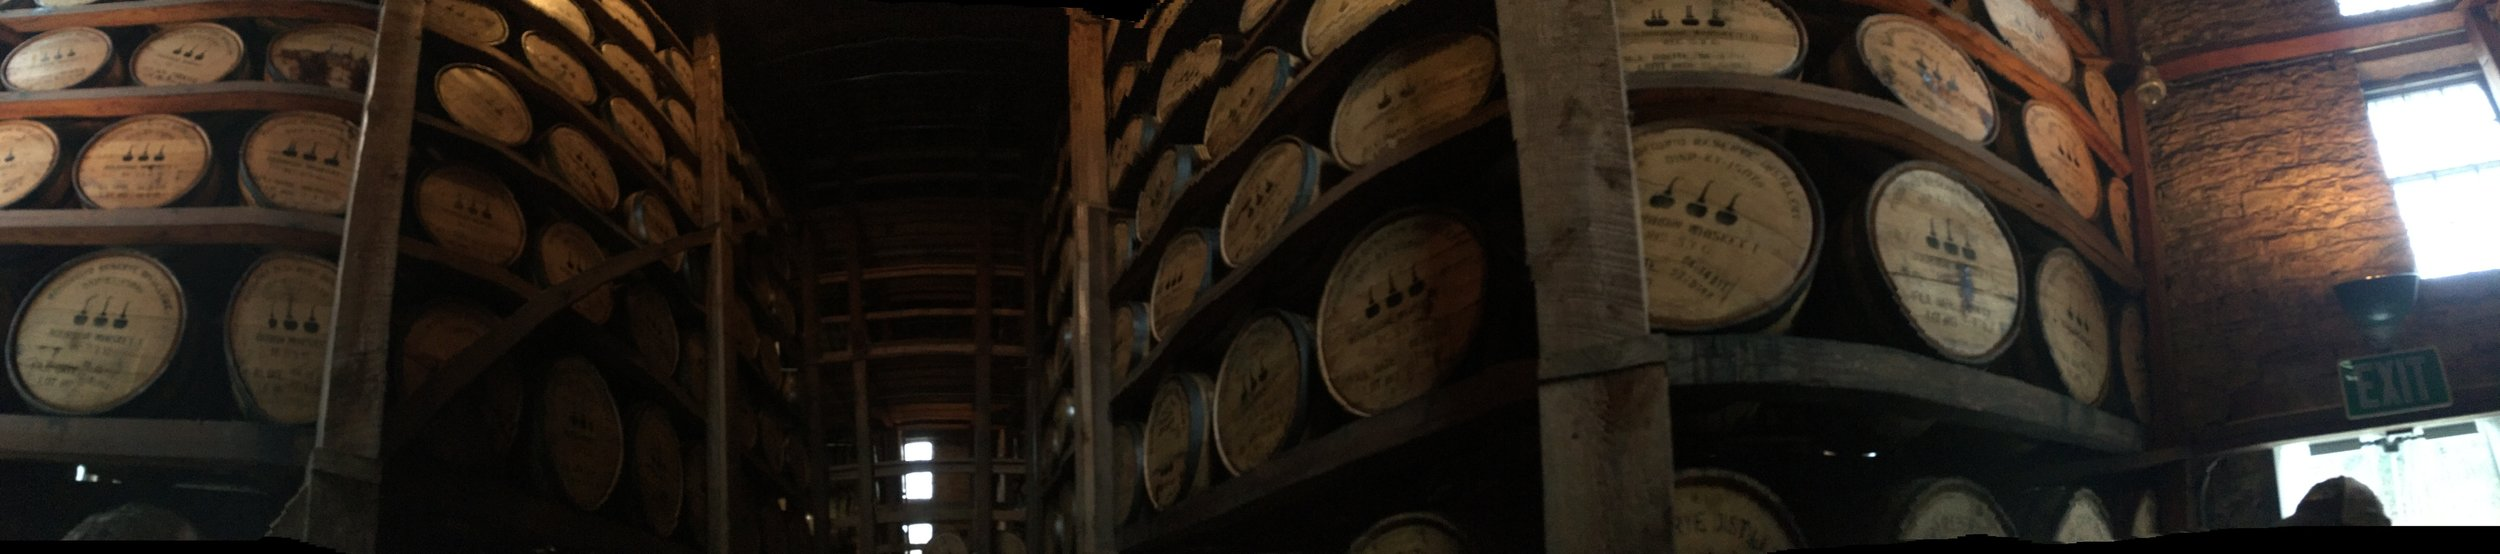 woodford reserve barrel room